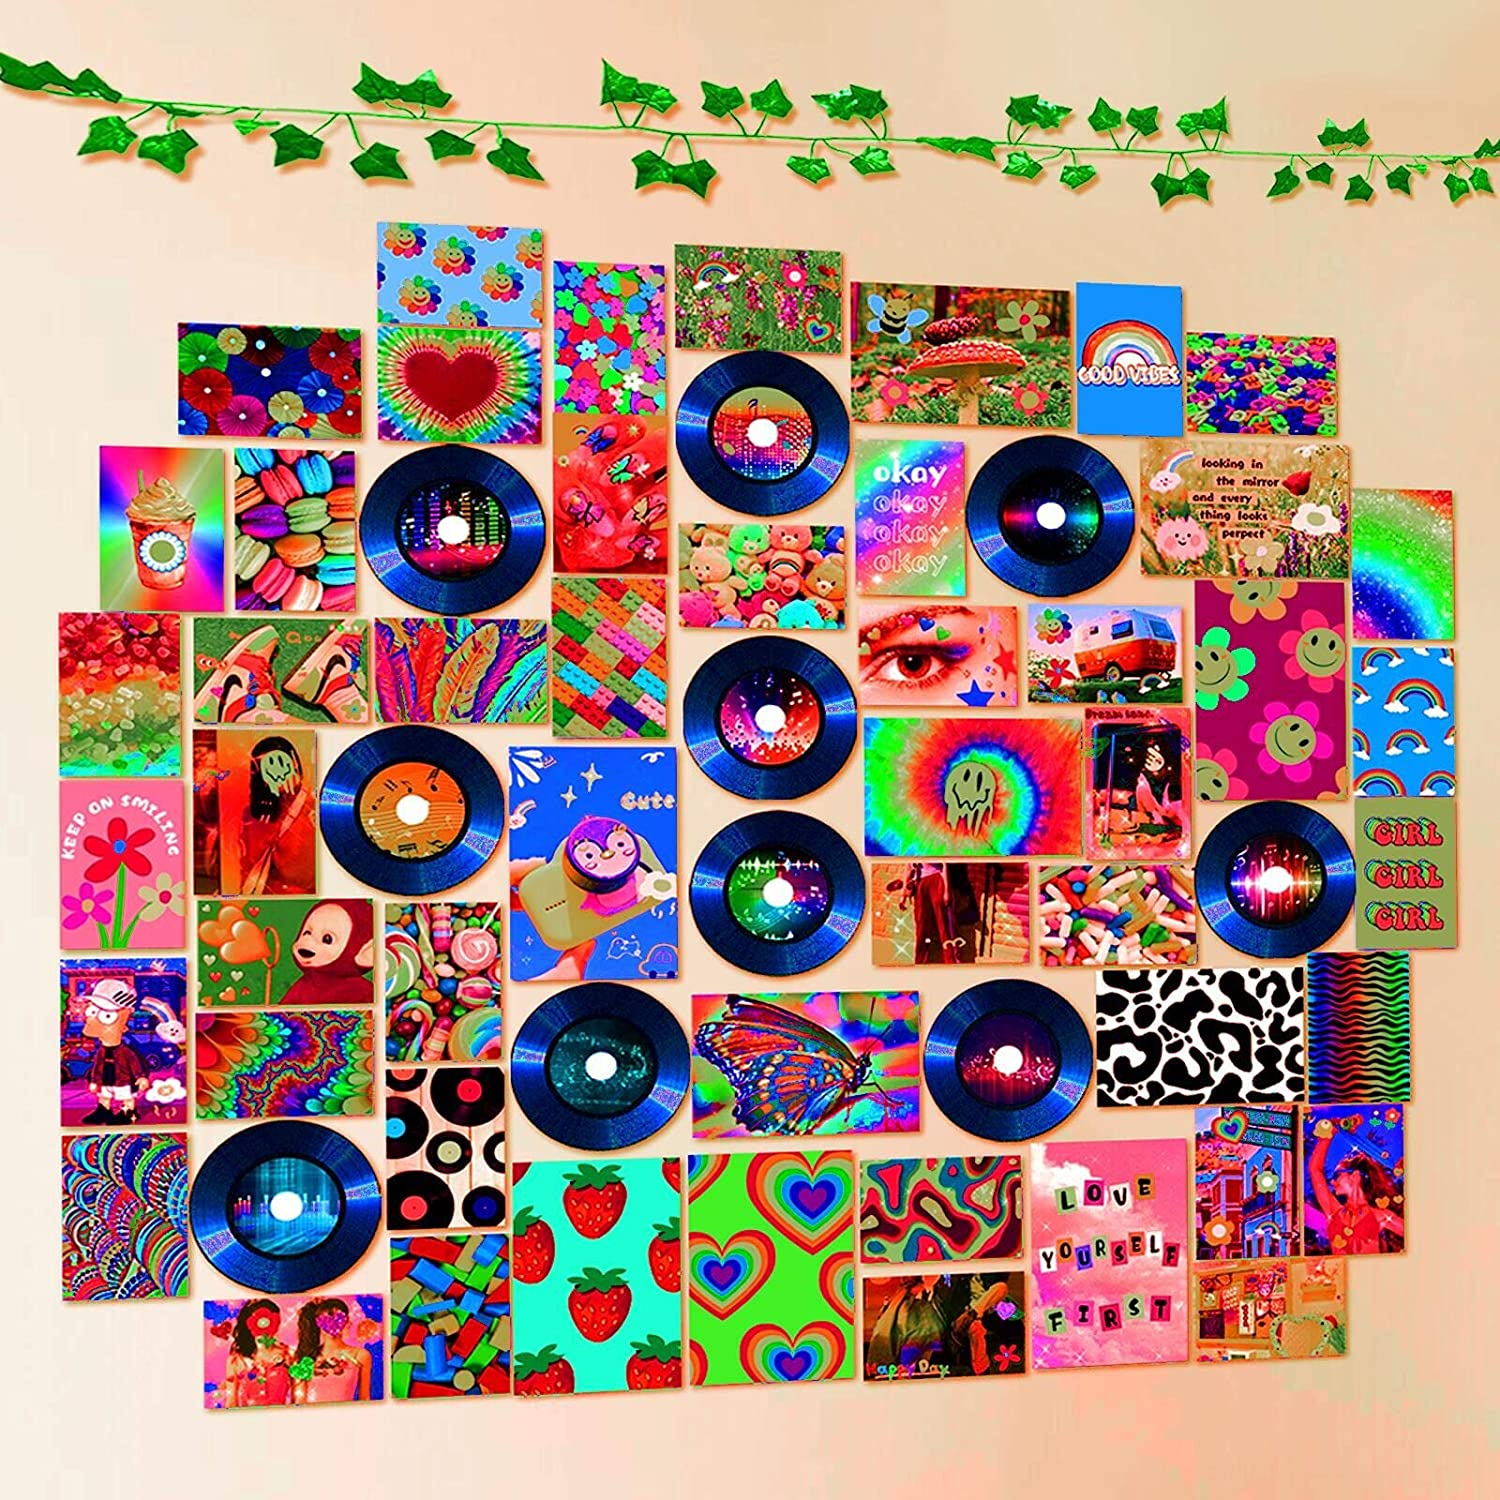 Room Decor for Bedroom Aesthetic - Indie Wall Photo Collage Kit 61pcs Posters Images Records Artificial Vines - Trippy Cute Room Decorations Vibes for Teen Girls Kidcore